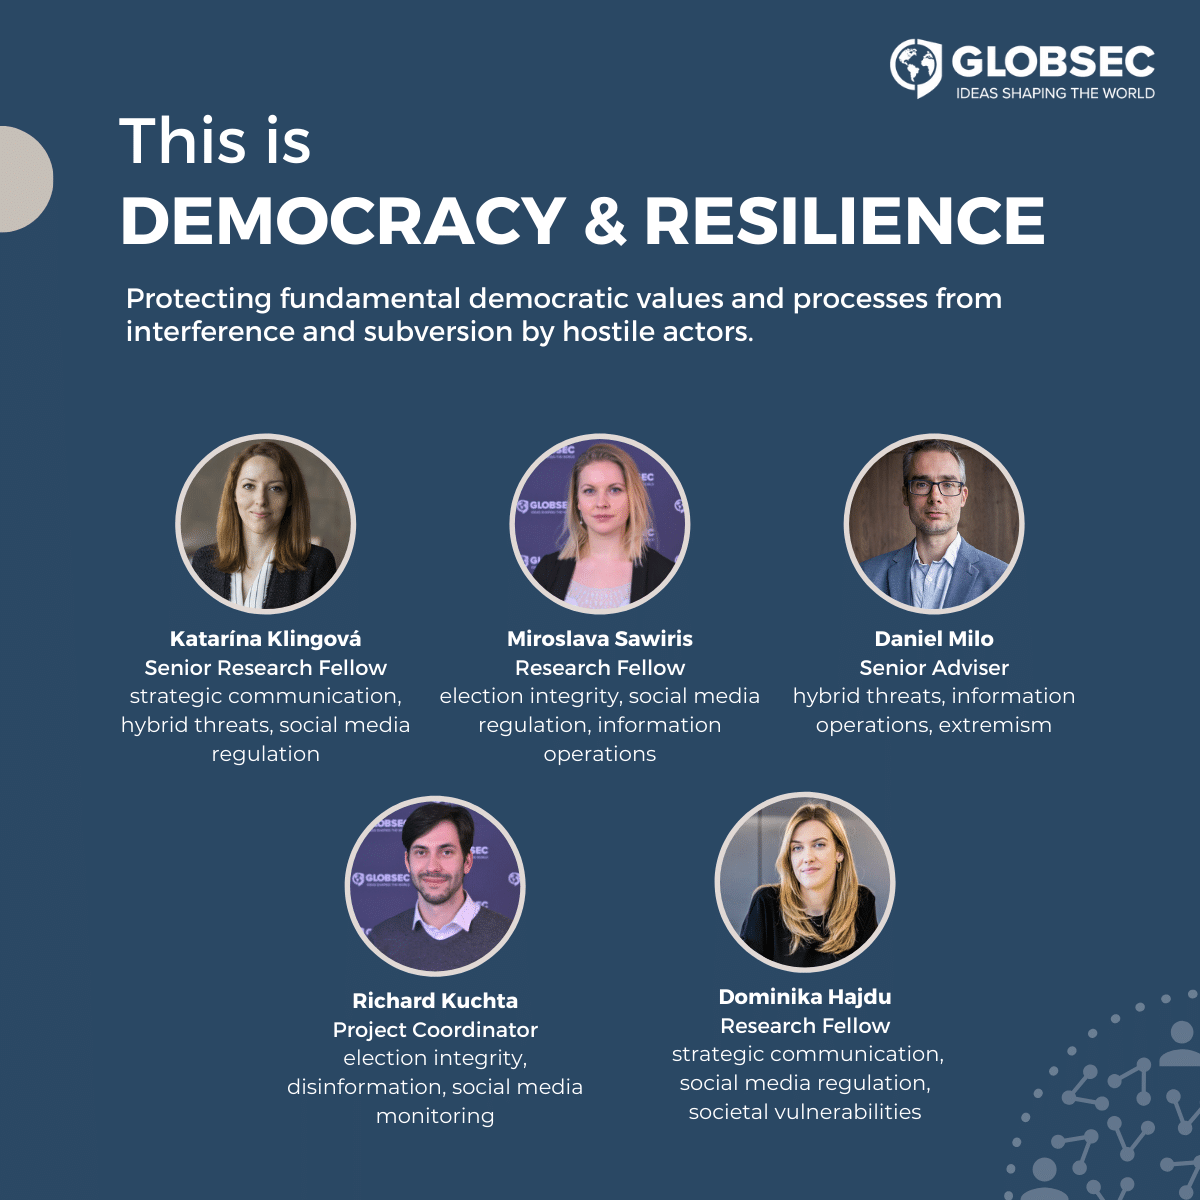 Members of GLOBSEC's Democracy & Resilience programme